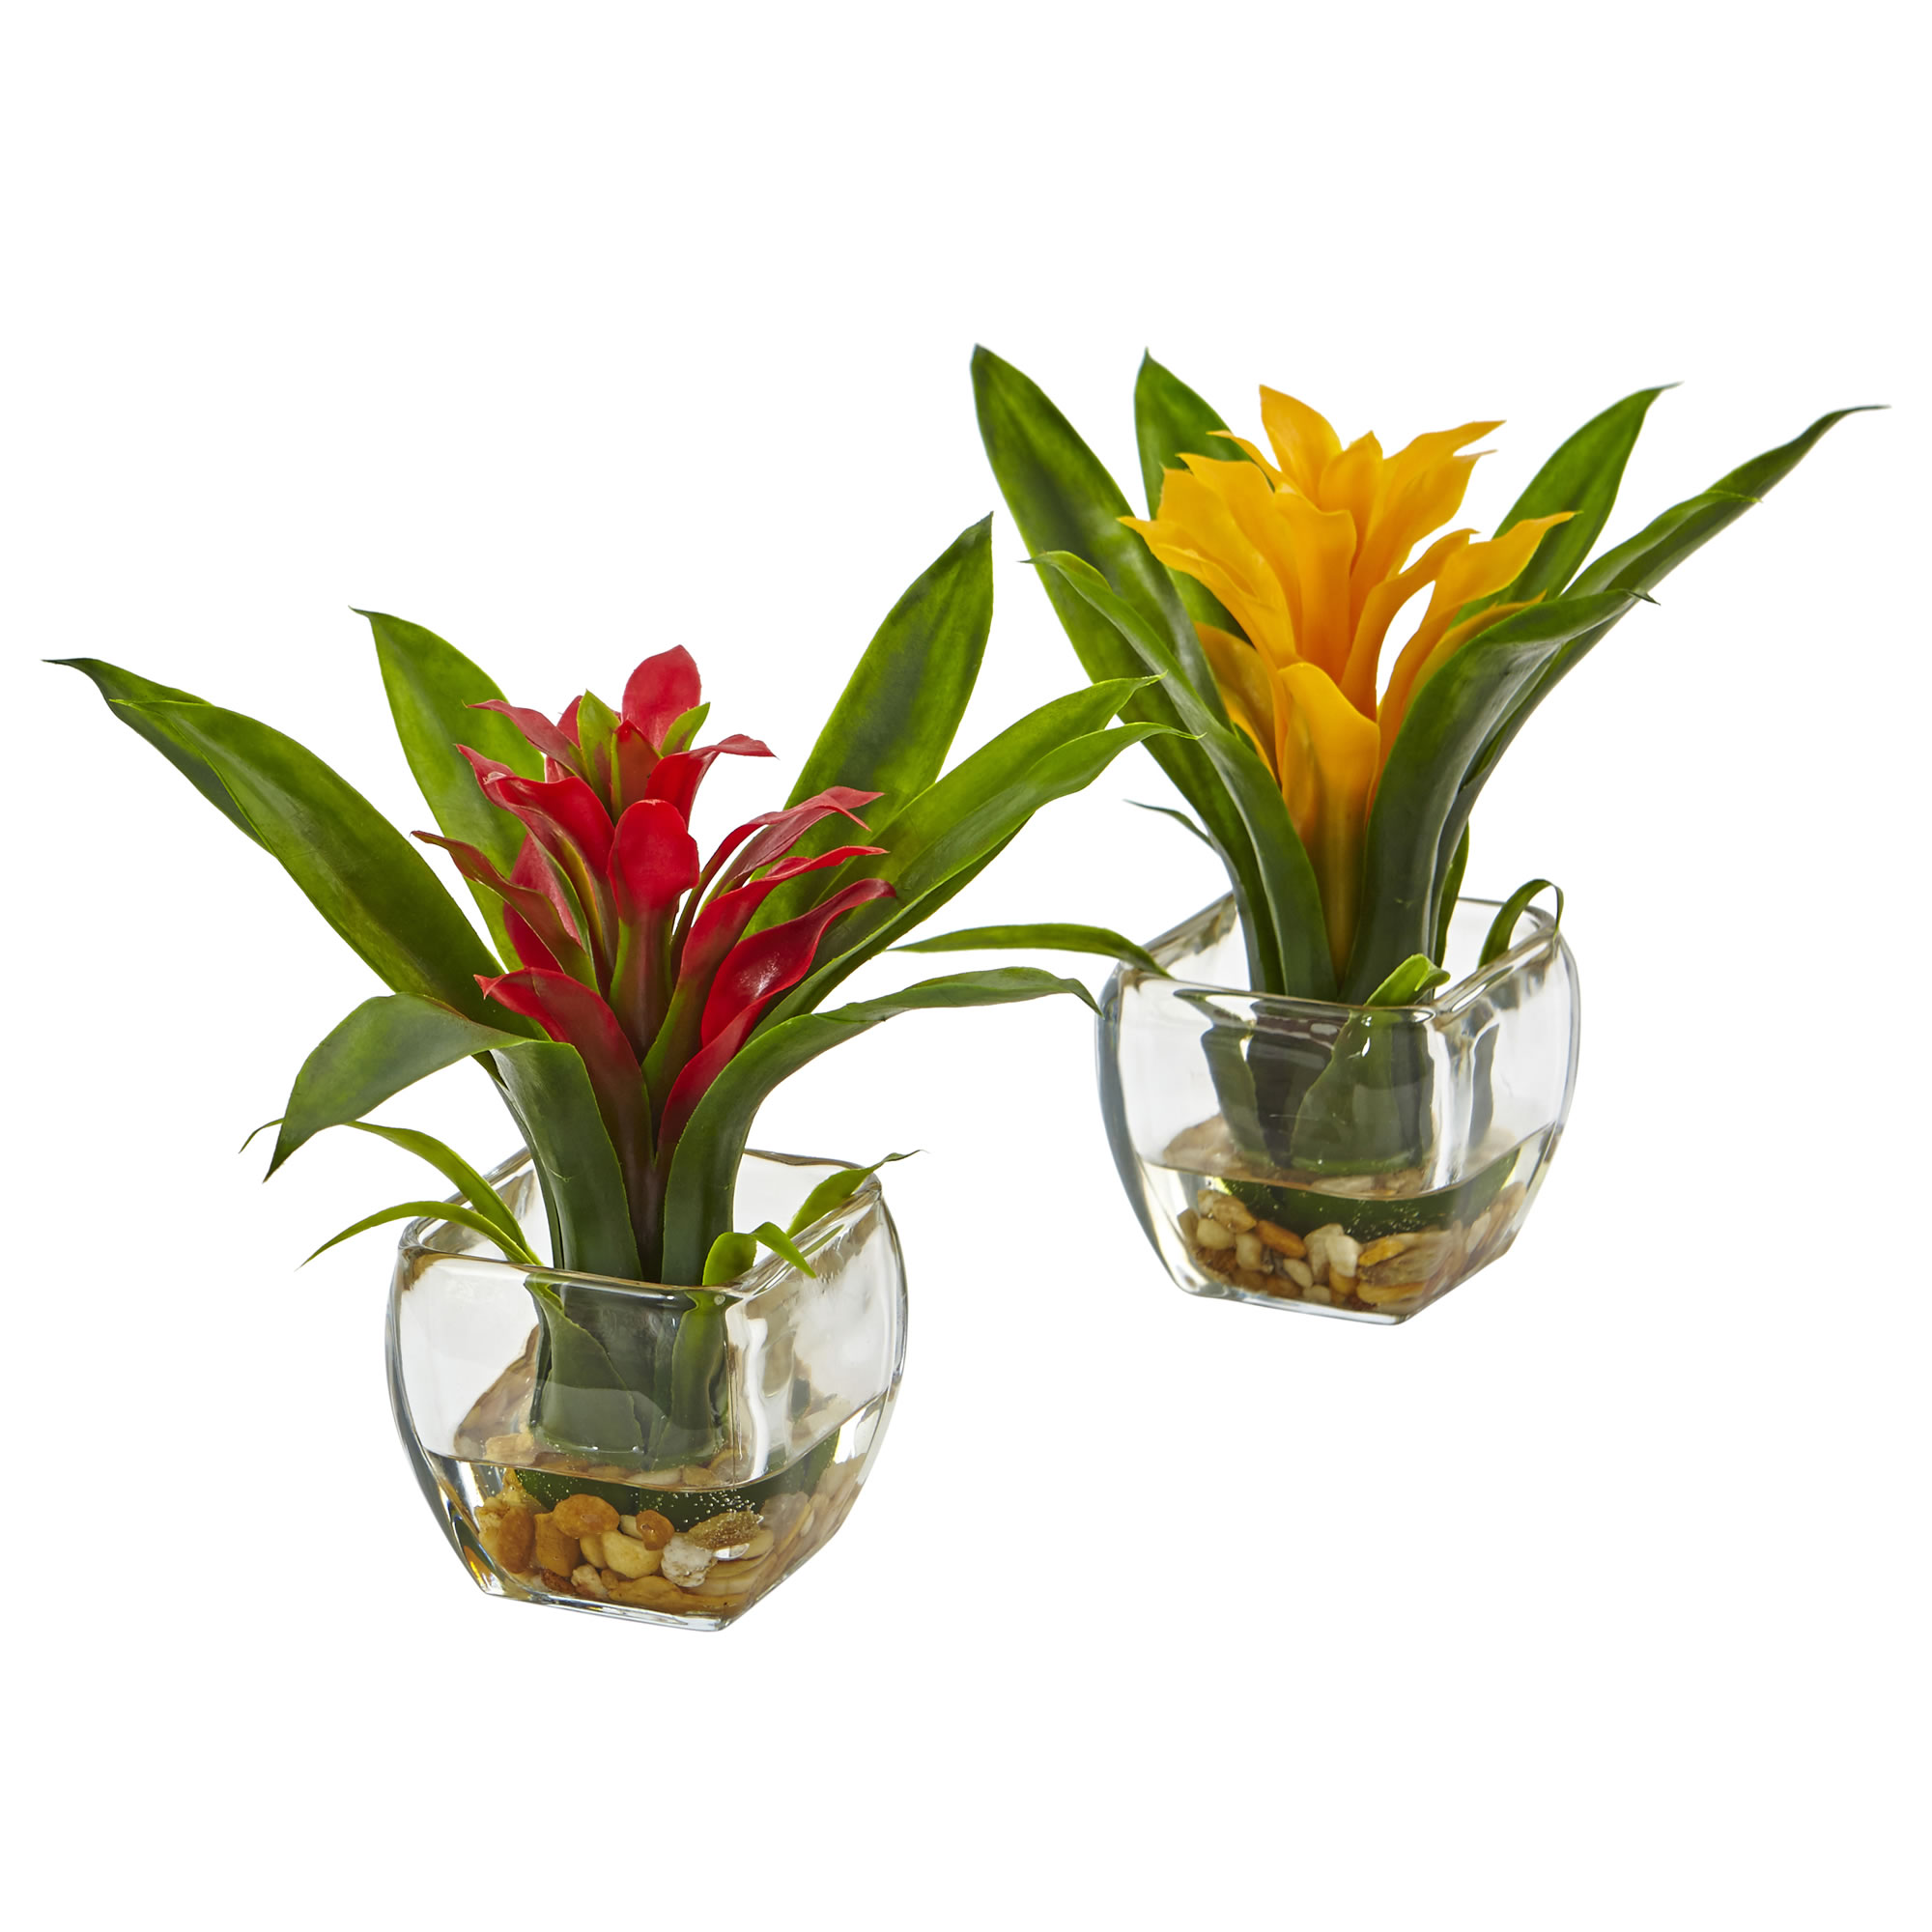 set of two tropical bromeliads flowers. With bold yellow and red petals. Lush green leaves grow vertically to cushion the flowers. Square glass vases with neutral pebbles and faux water.